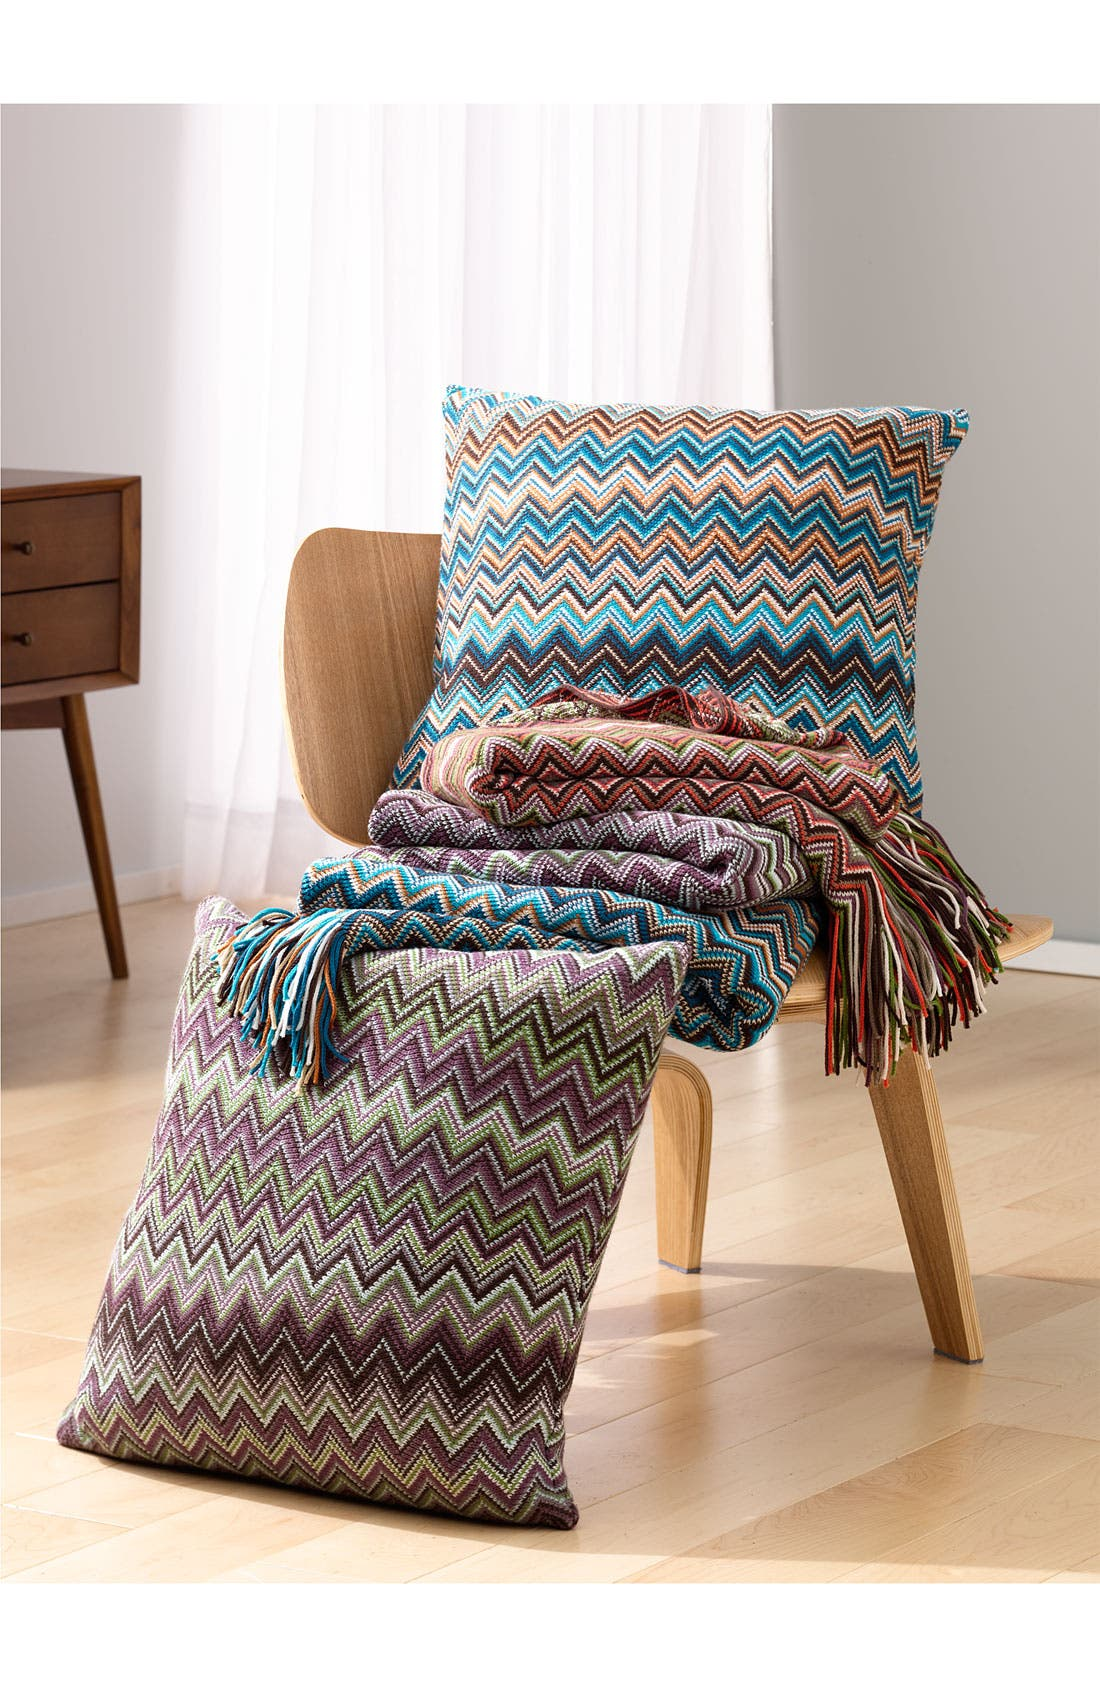 Alternate Image 3  - Kennebunk Home 'Caitlin' Chevron Knit Throw